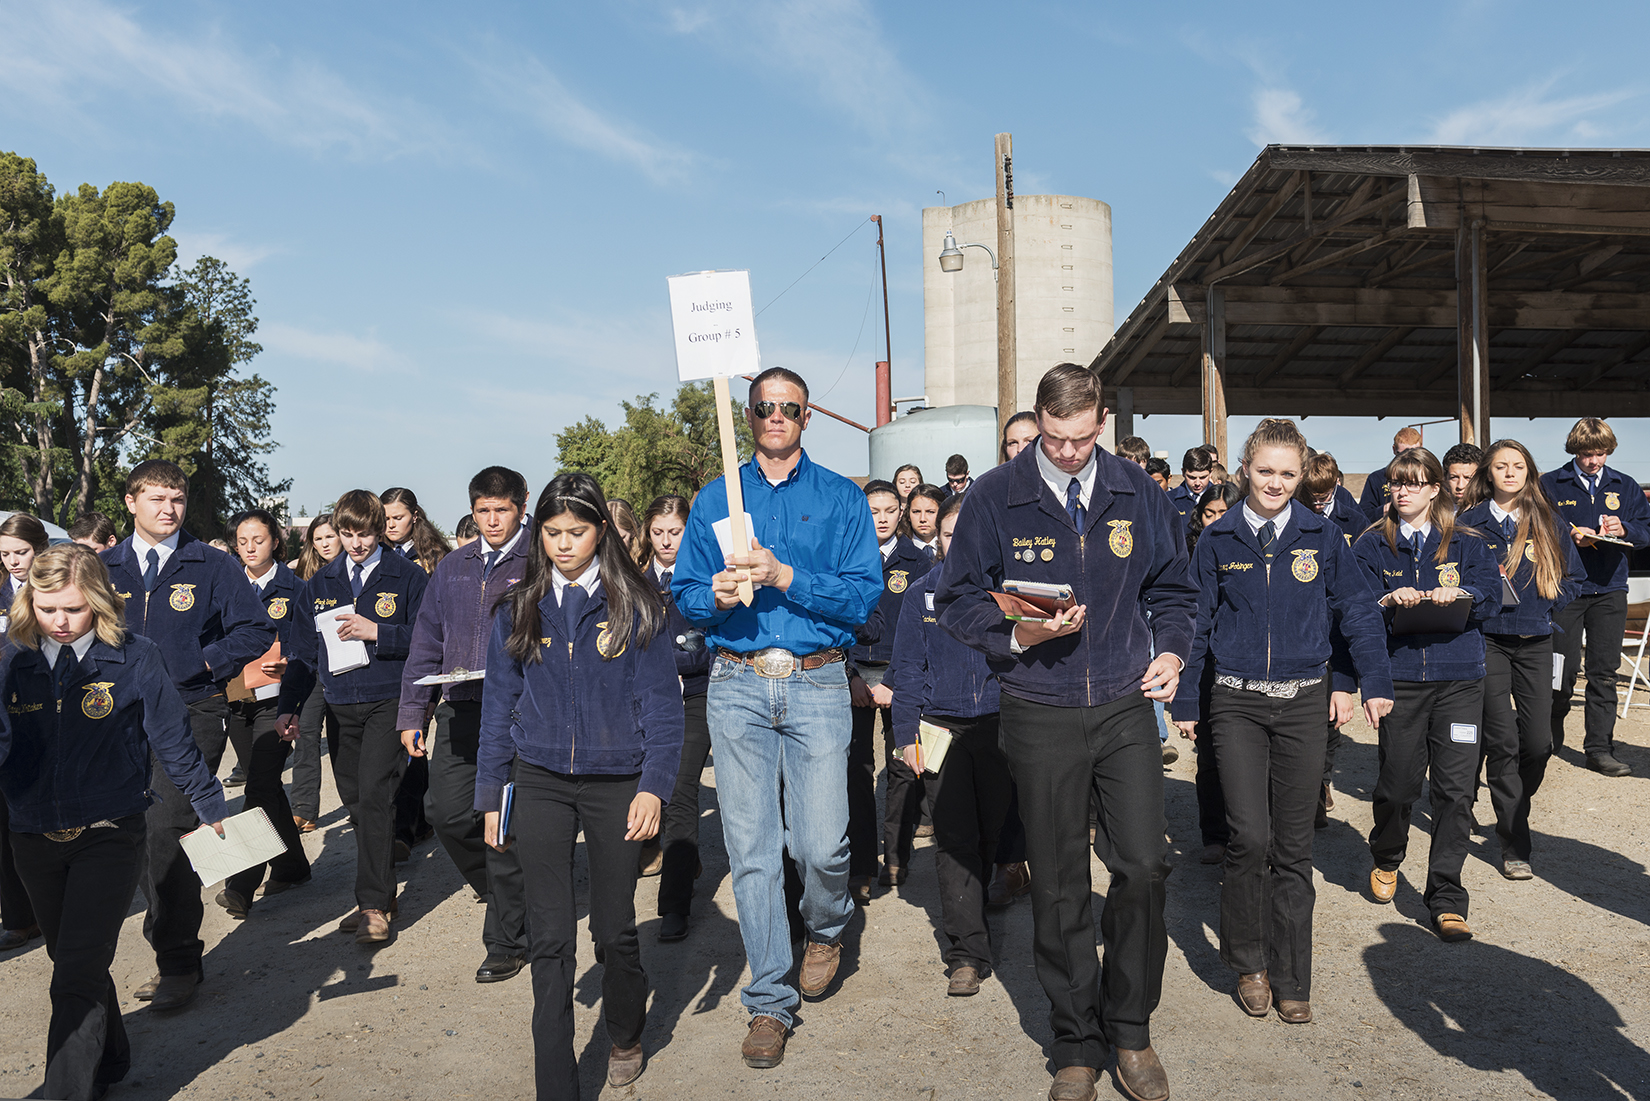 The California Future Farmers of America is trying to bring in more Latino students into the program, with hopes developing an interest in careers in agriculture, as half of all farm laborers and operators in the U.S. are Hispanic. I photographed the 2015 California FFA state championship at Fresno State University for Bright, Medium's education platform.